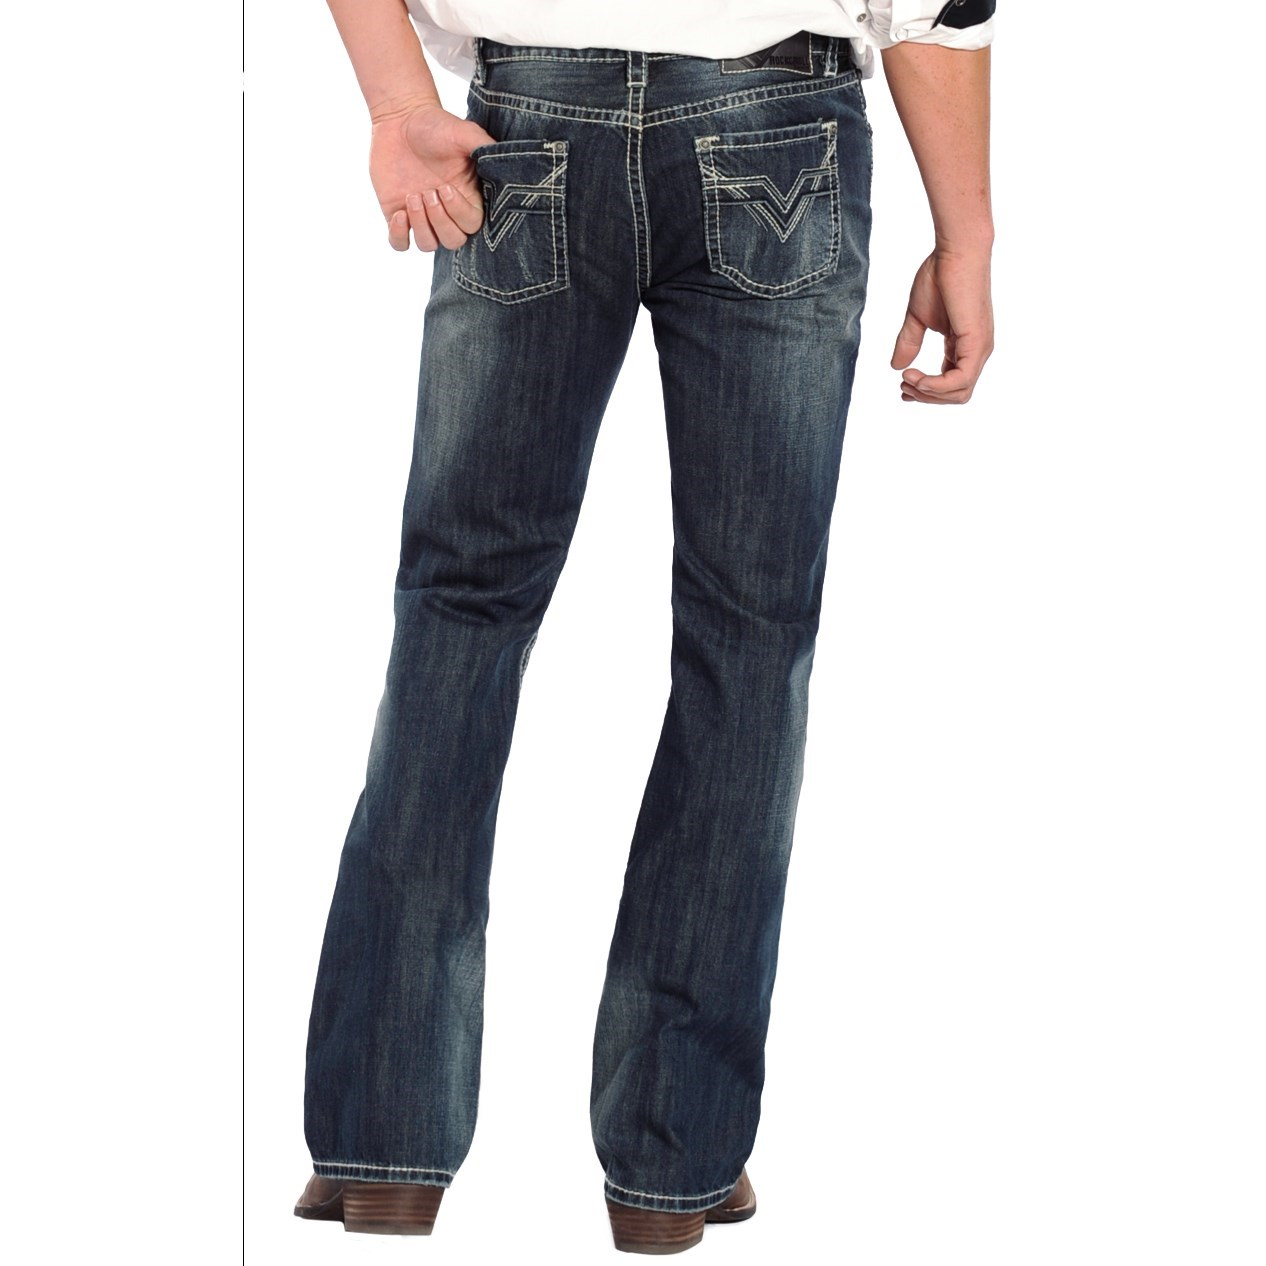 rock roll cowboy pistol vintage wash jeans for men. Black Bedroom Furniture Sets. Home Design Ideas